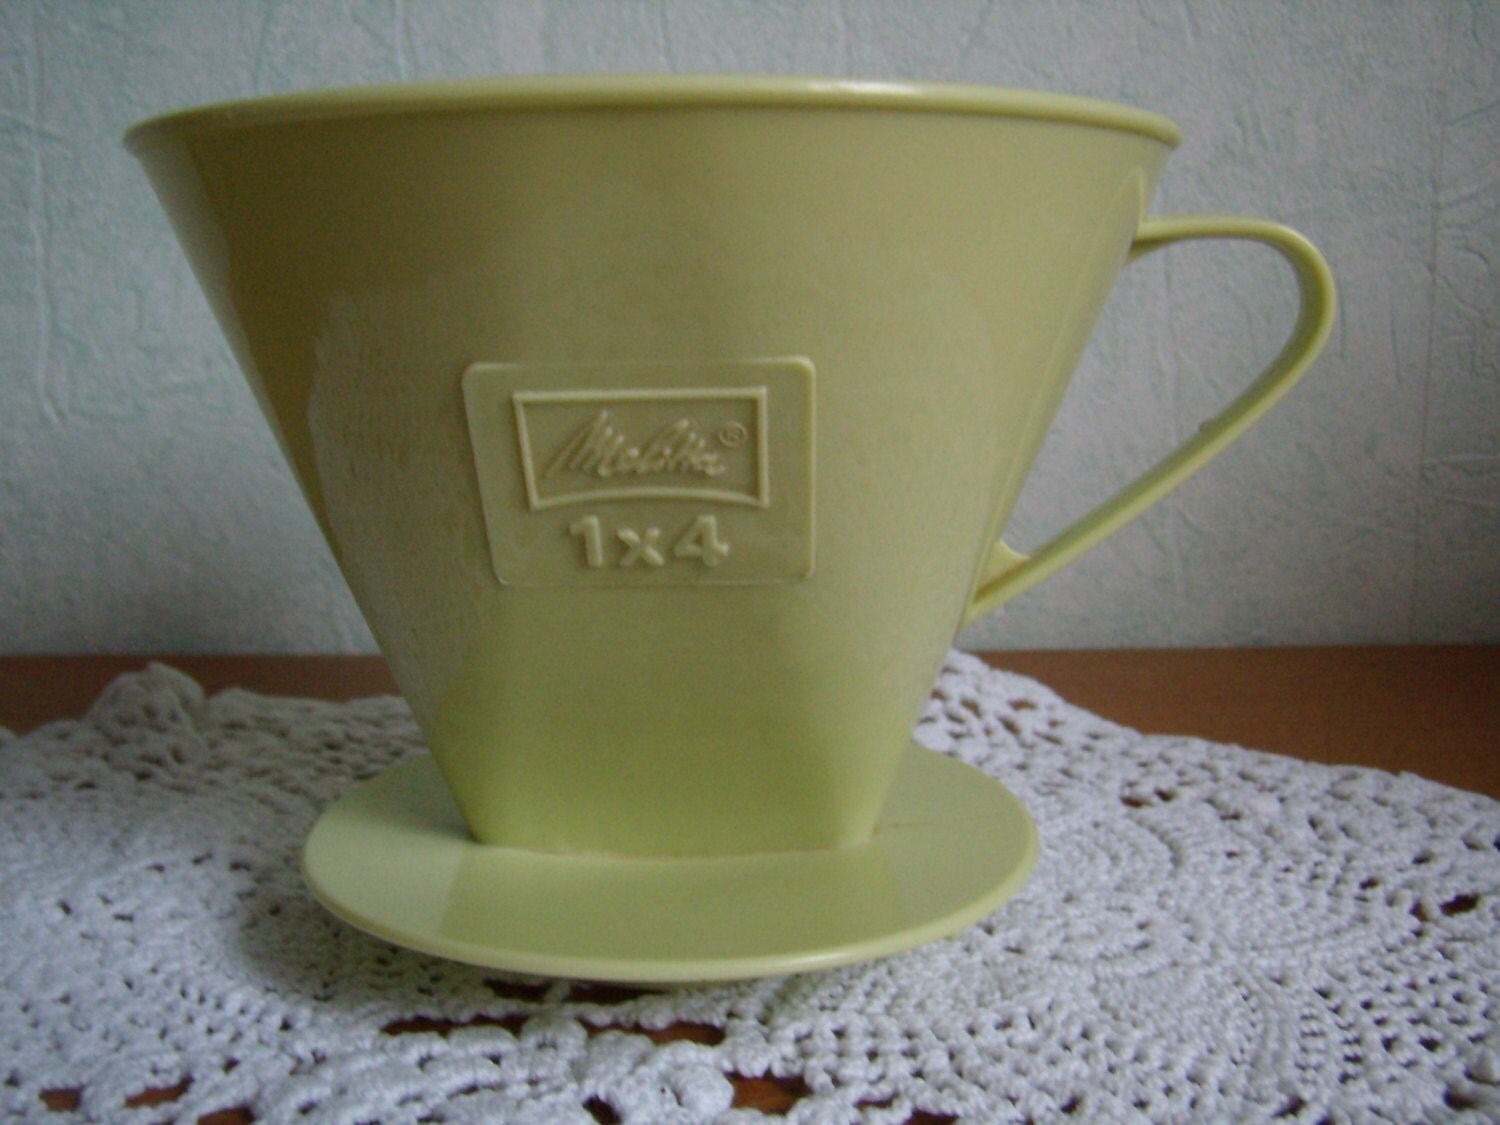 Coffee Melitta 1 X 4 Green Plastic Filter Holder Vintage